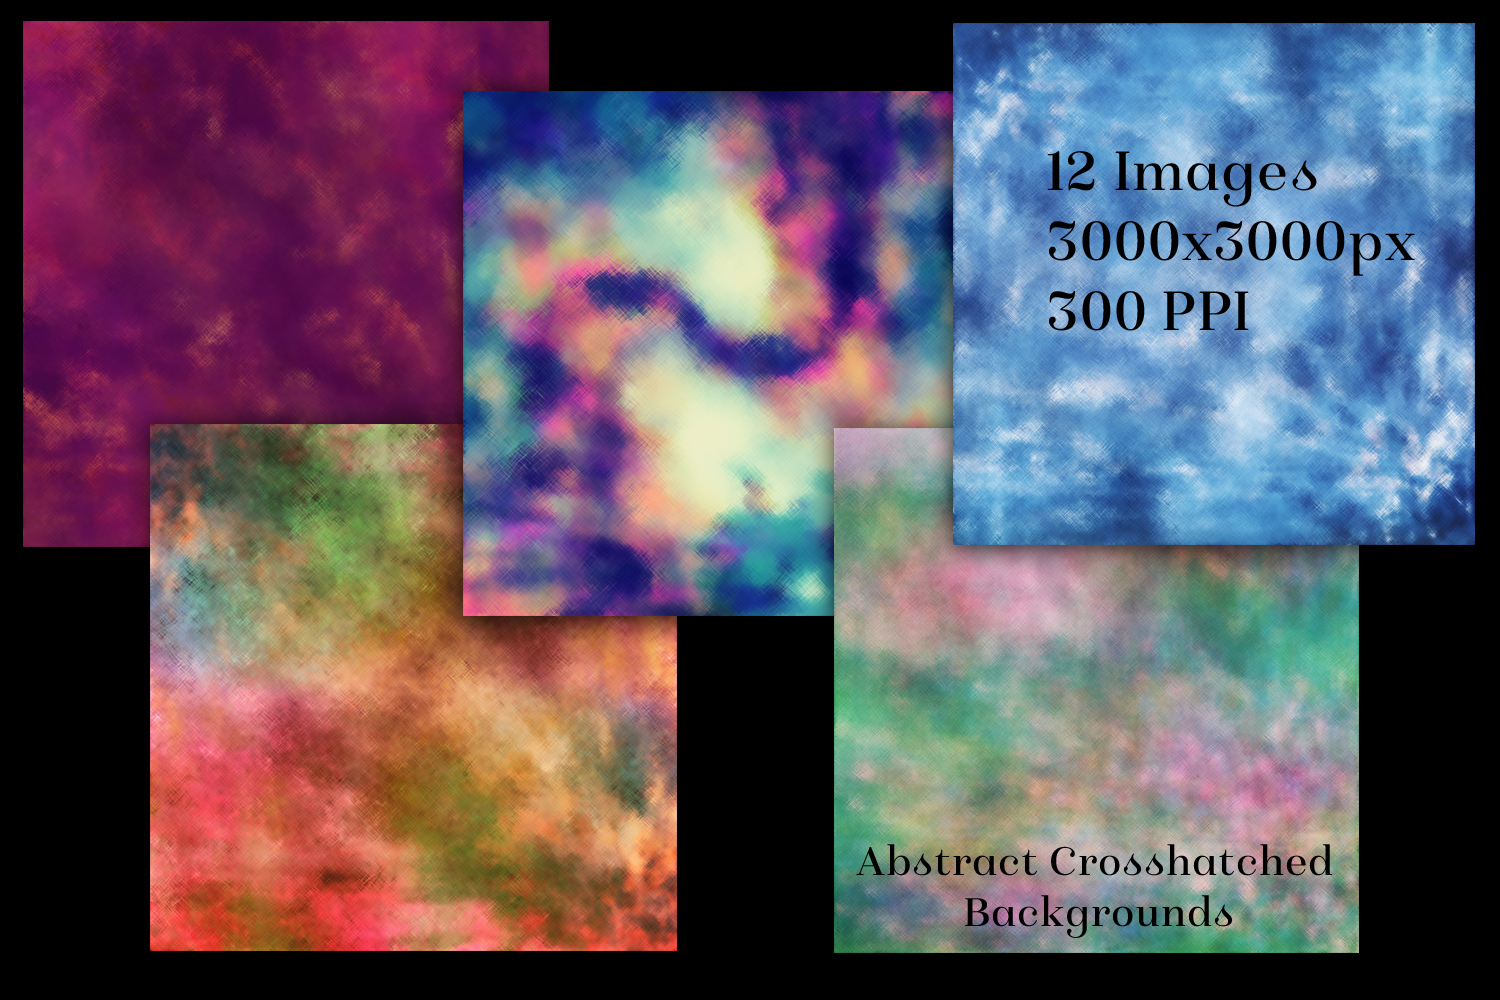 Abstract Crosshatched Backgrounds - 12 Image Textures Set example image 2